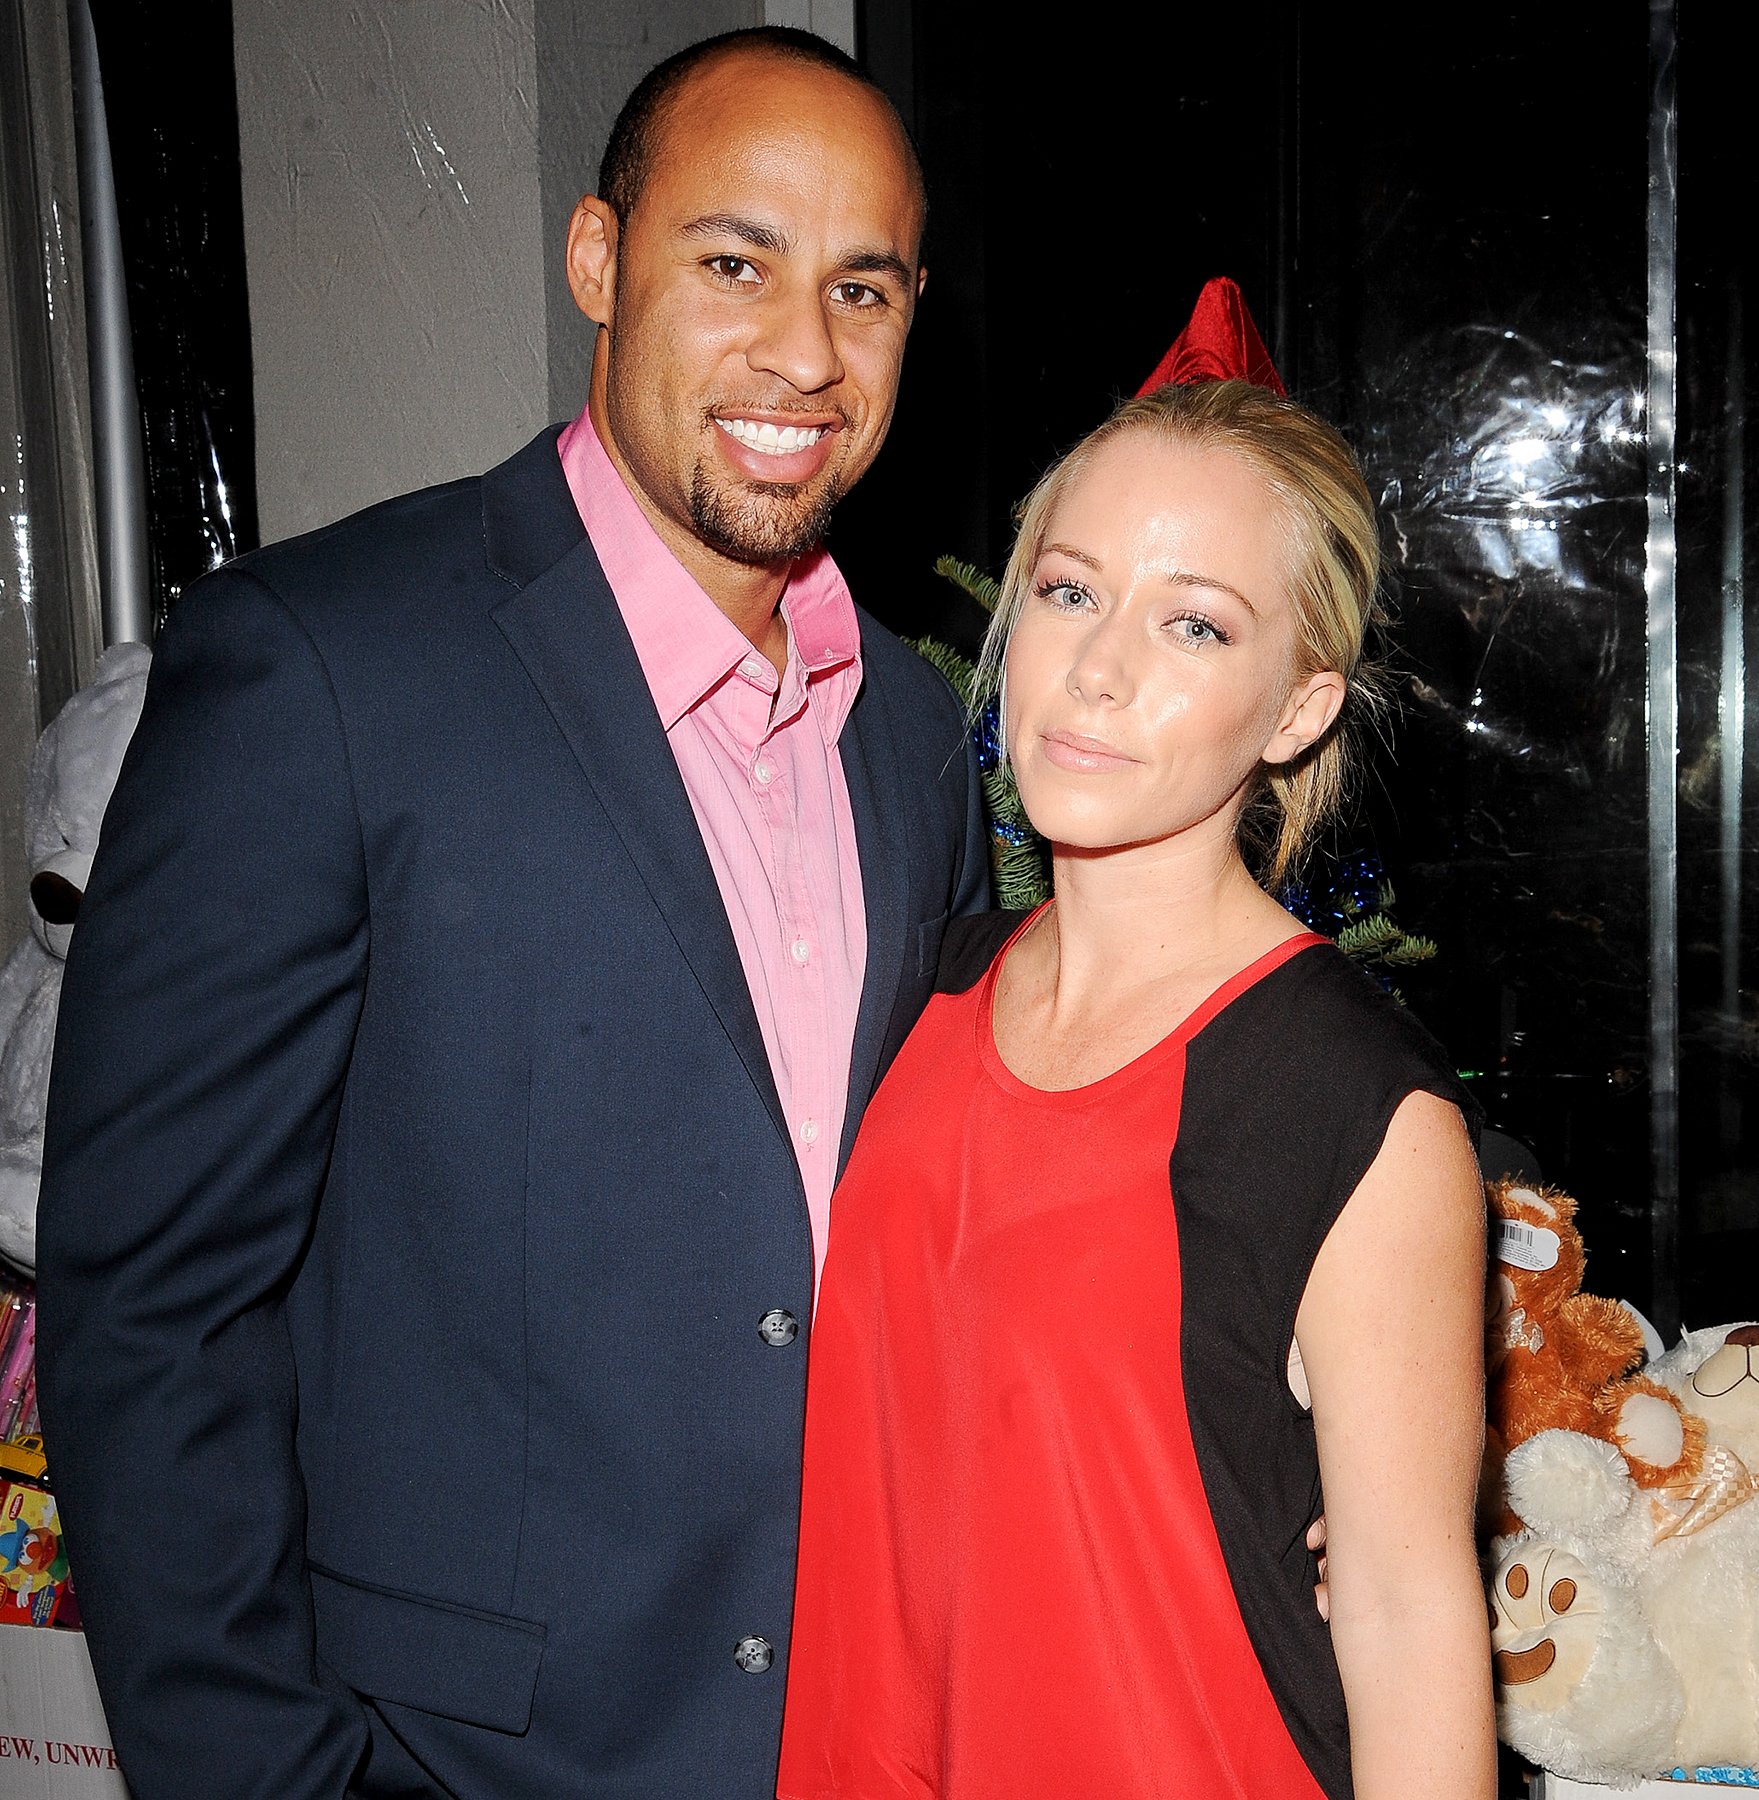 Kendra Wilkinson blasts Hank Baskett for recording her